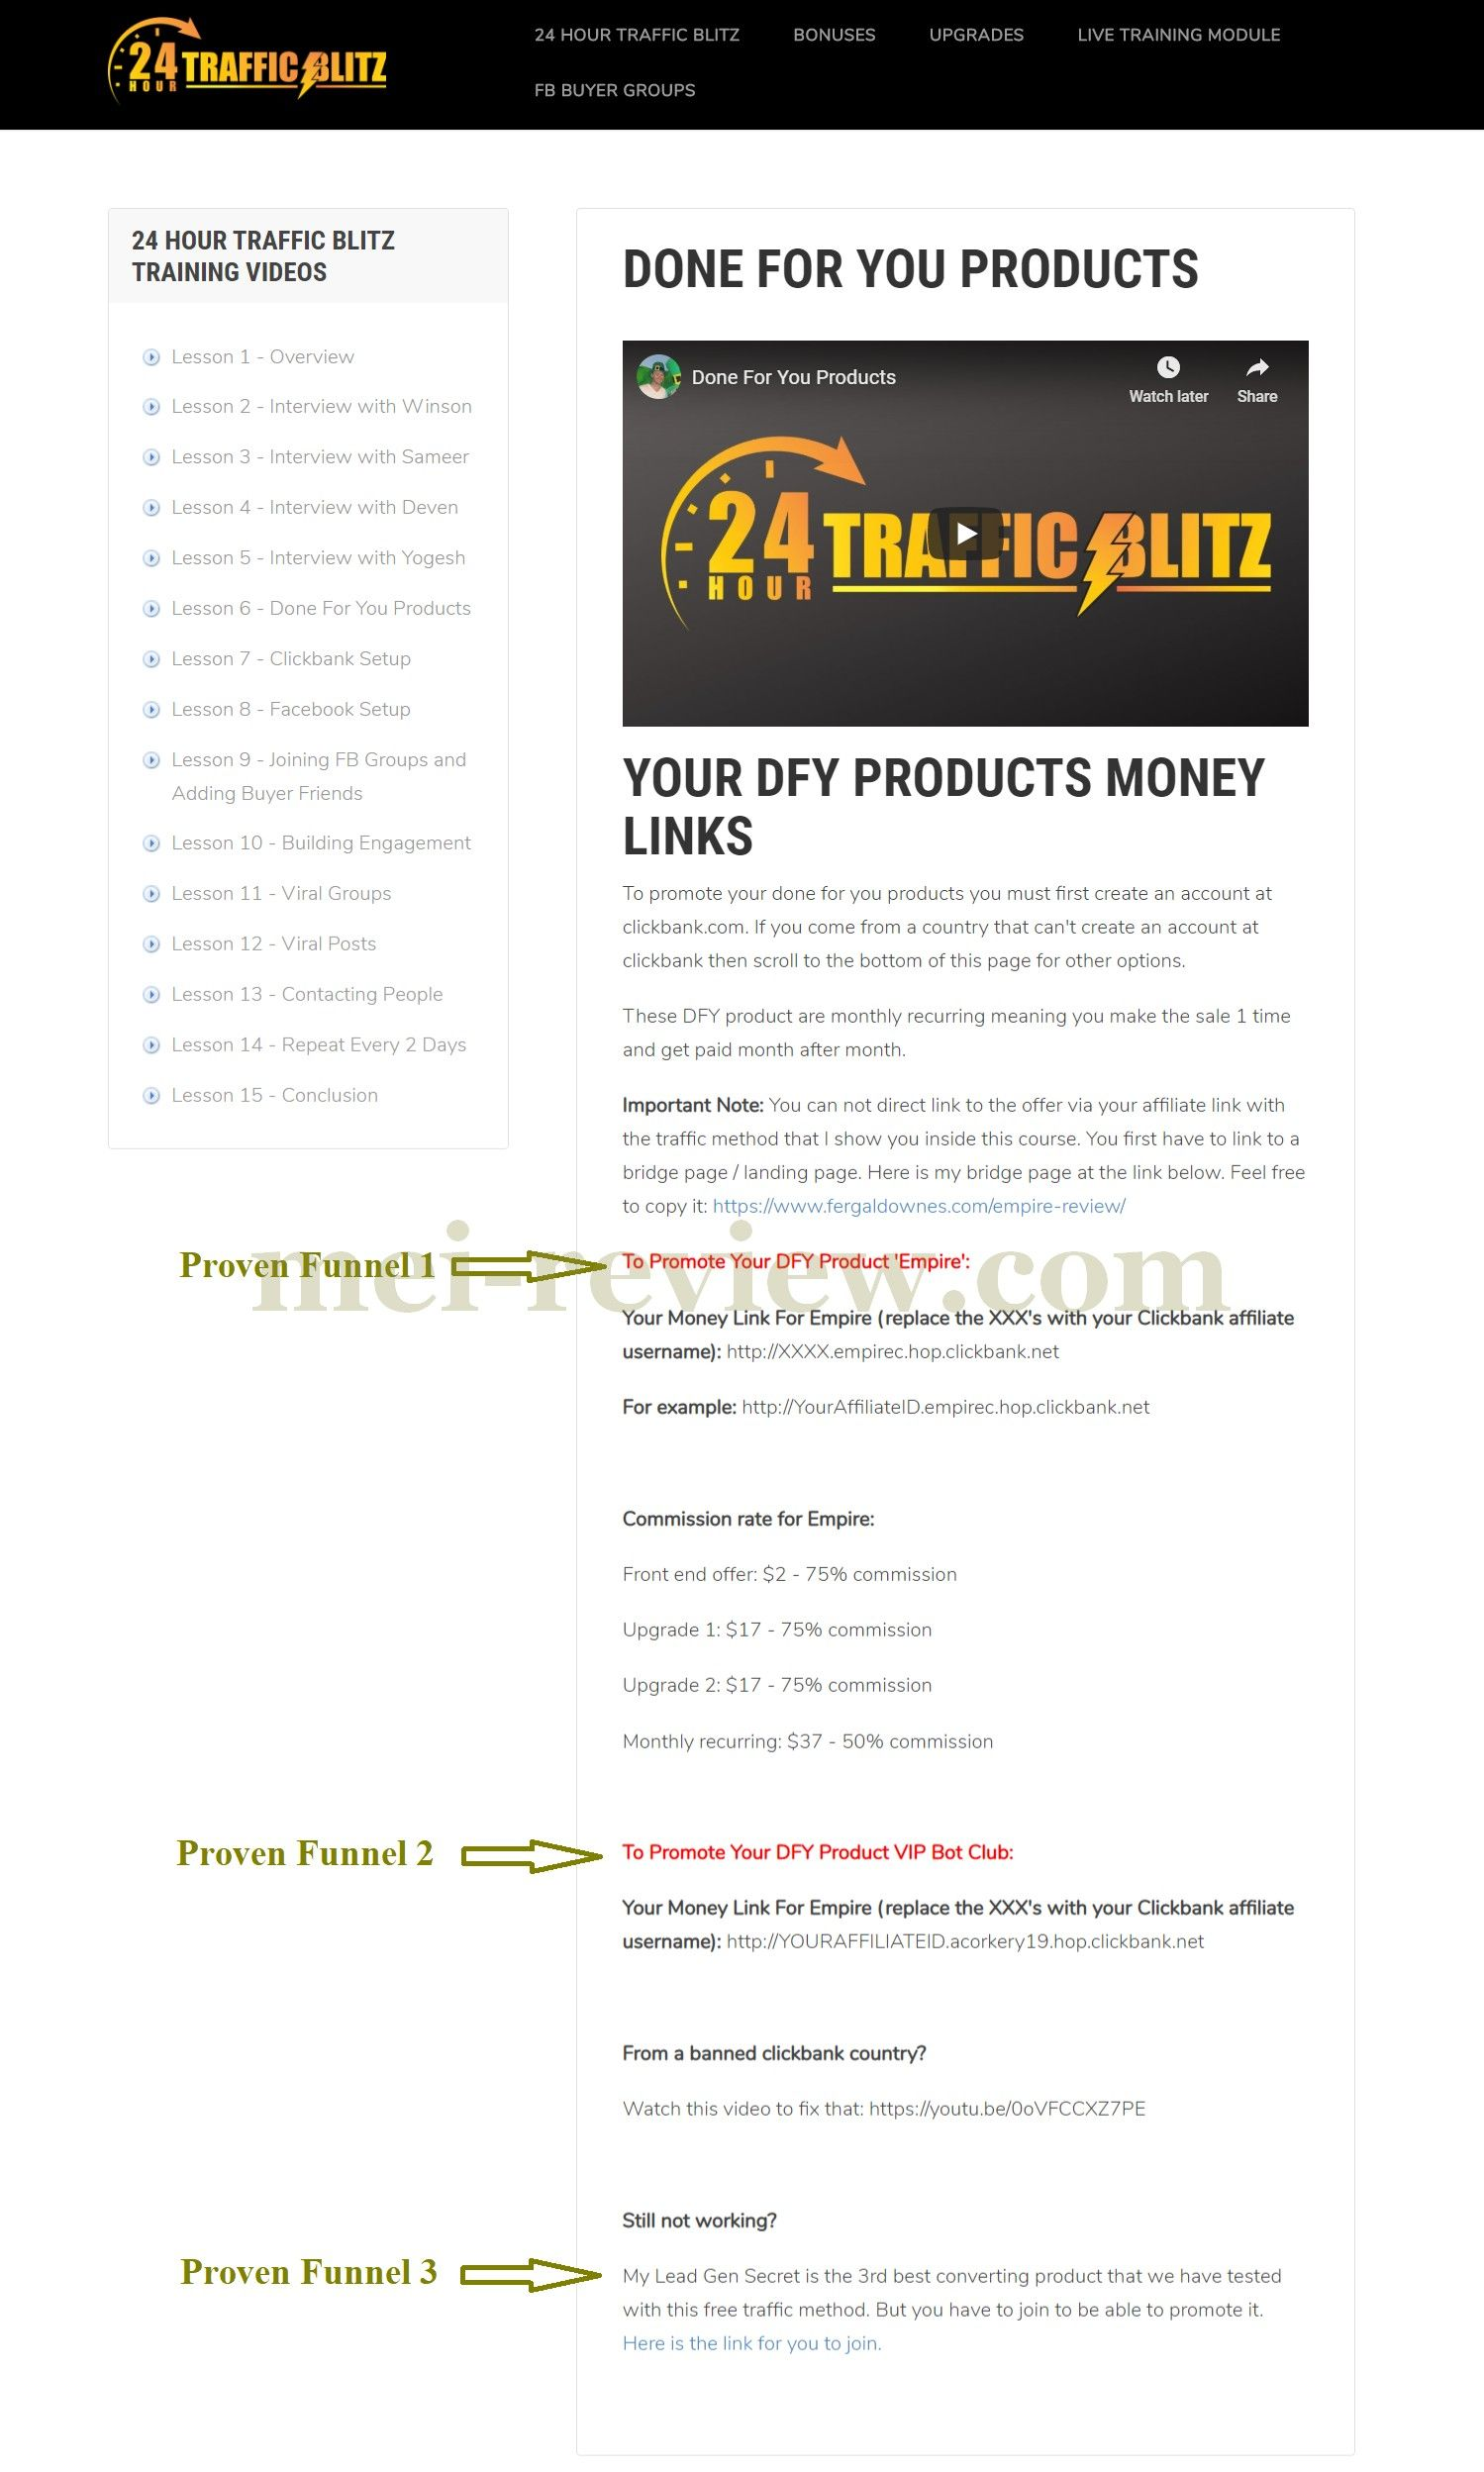 24-Hour-Traffic-Blitz-DFY-Funnel